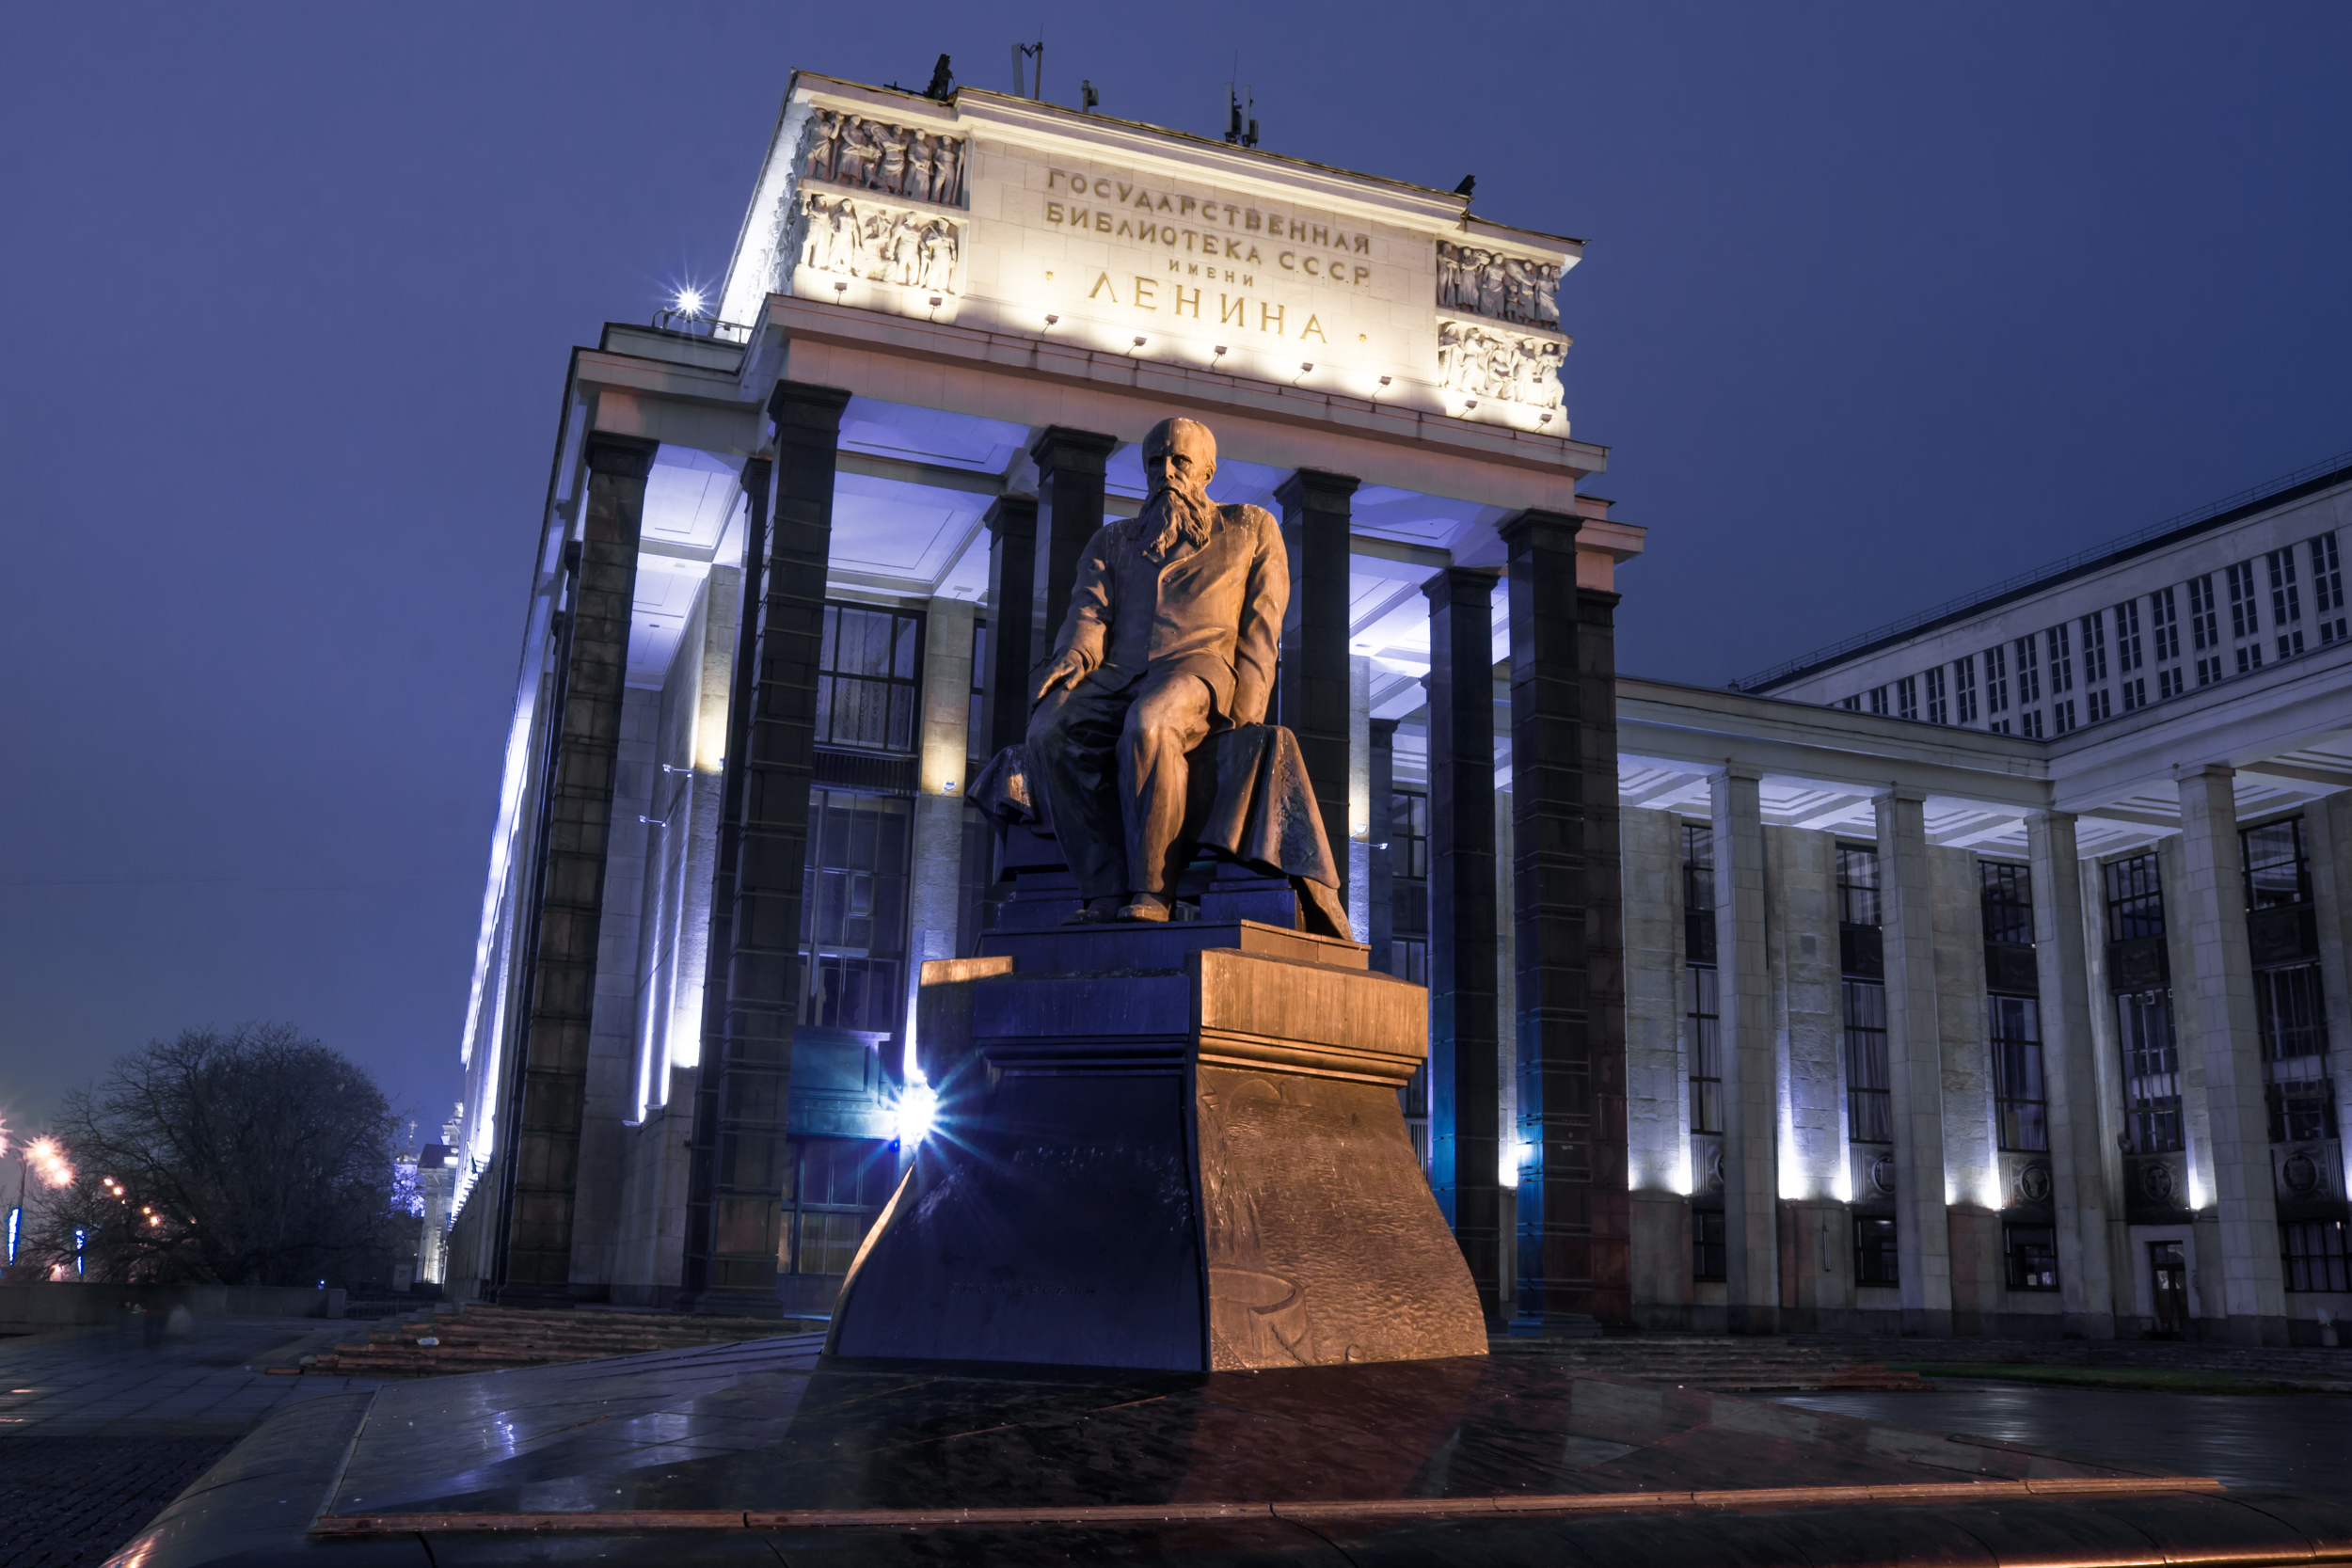 monument of Dostoevsky the Russian State Library